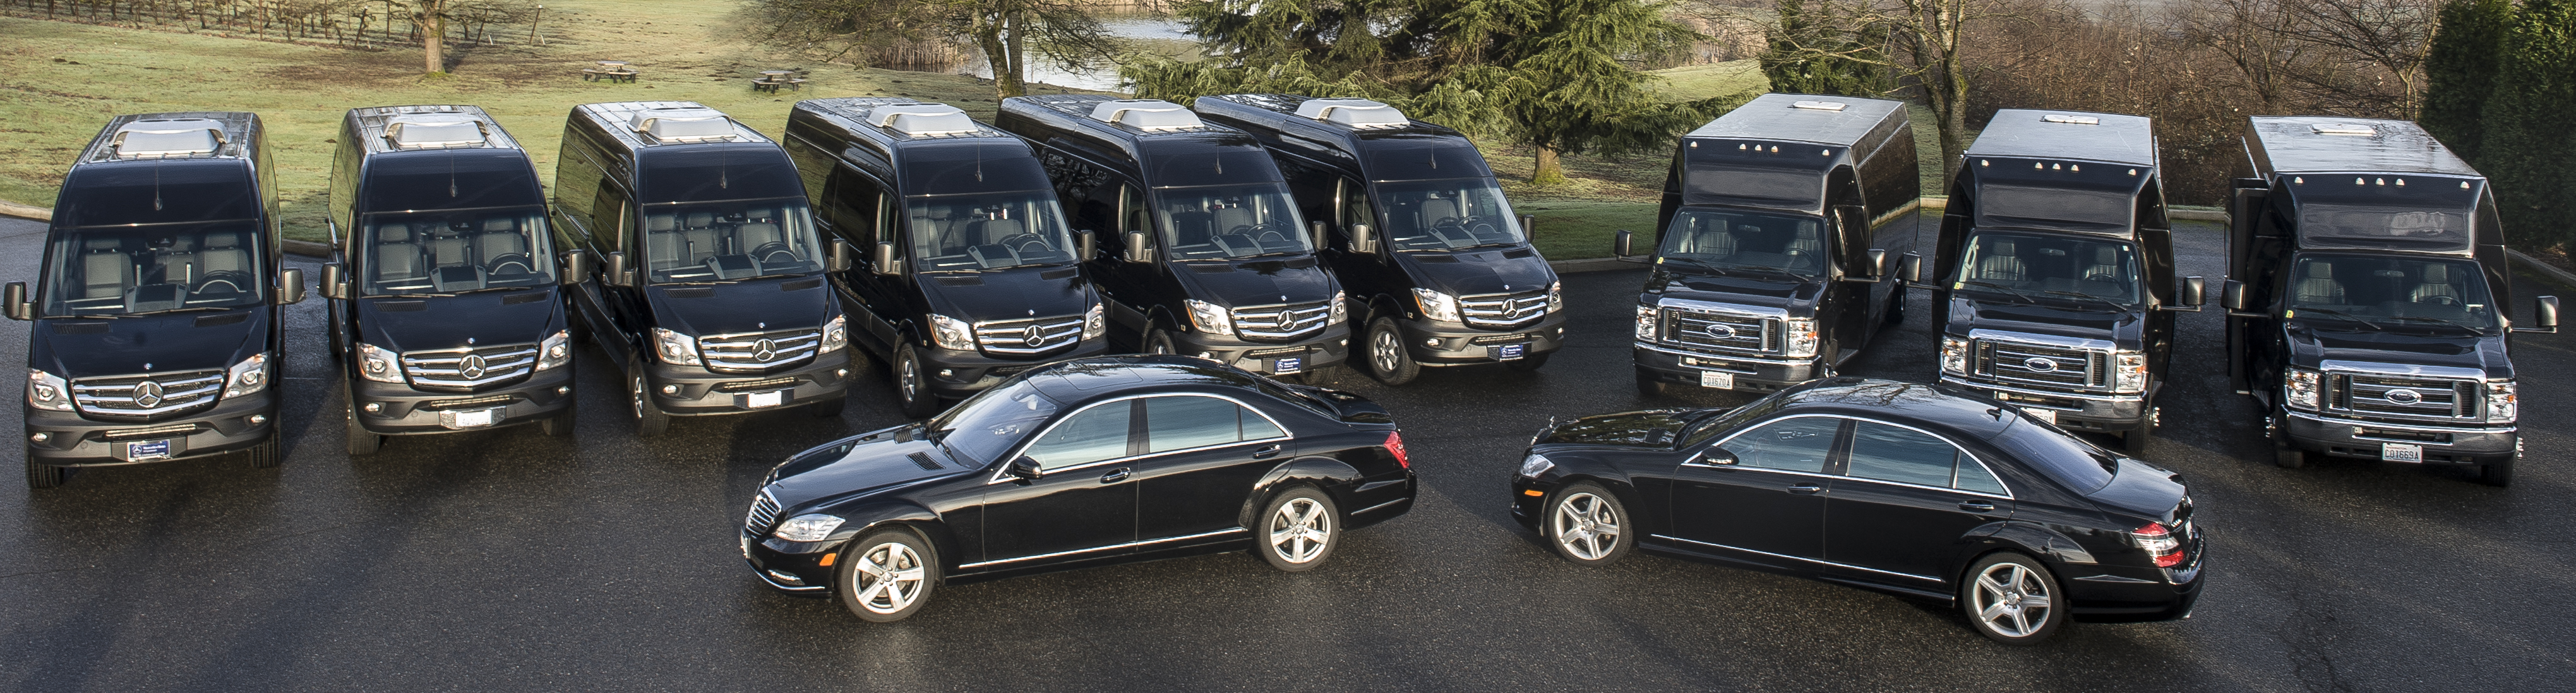 Butler Transportation fleet